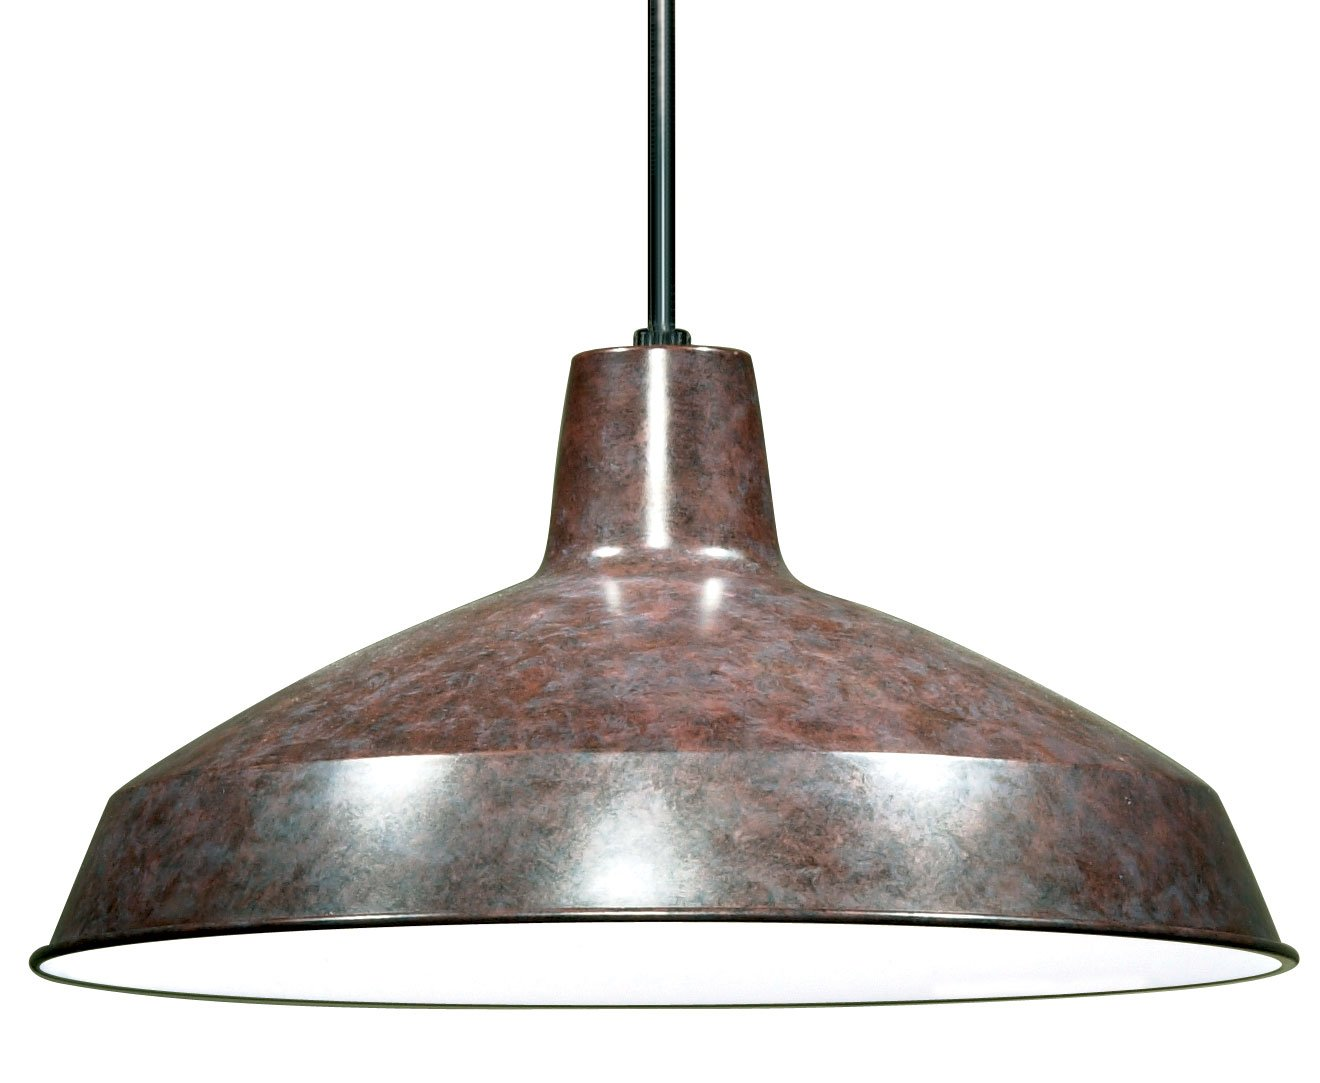 Nuvo lighting sf76662 warehouse shade old bronze ceiling pendant nuvo lighting sf76662 warehouse shade old bronze ceiling pendant fixtures amazon aloadofball